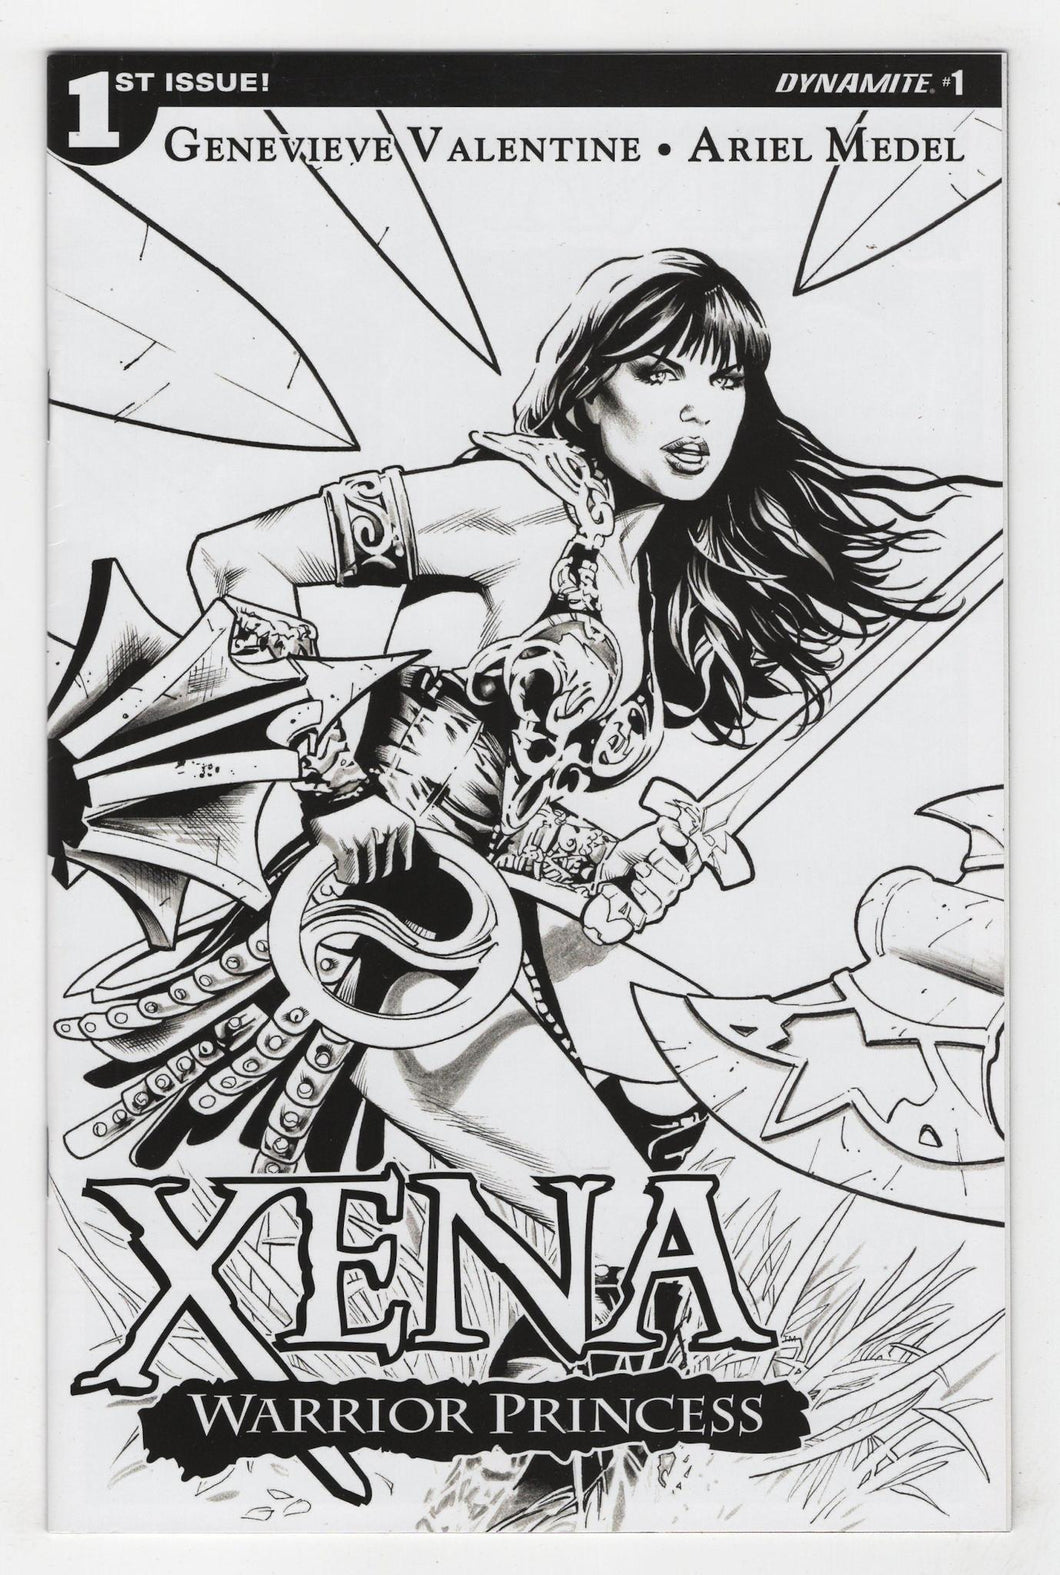 Xena Warrior Princess #1 Land Variant Cover Front